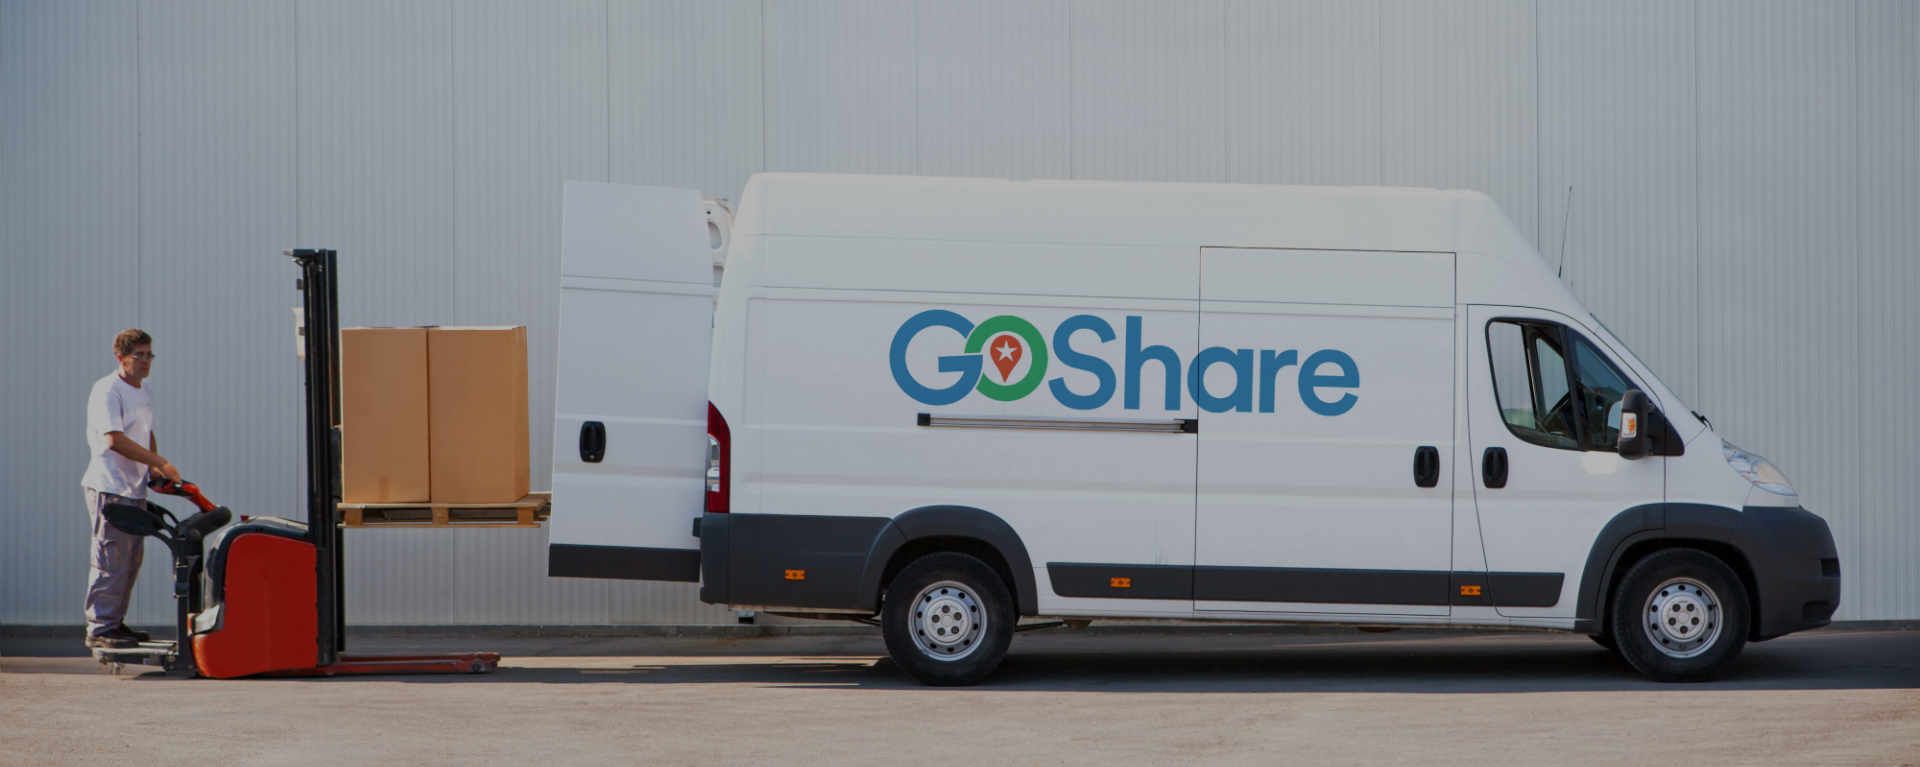 Last Mile Delivery On Demand - GoShare